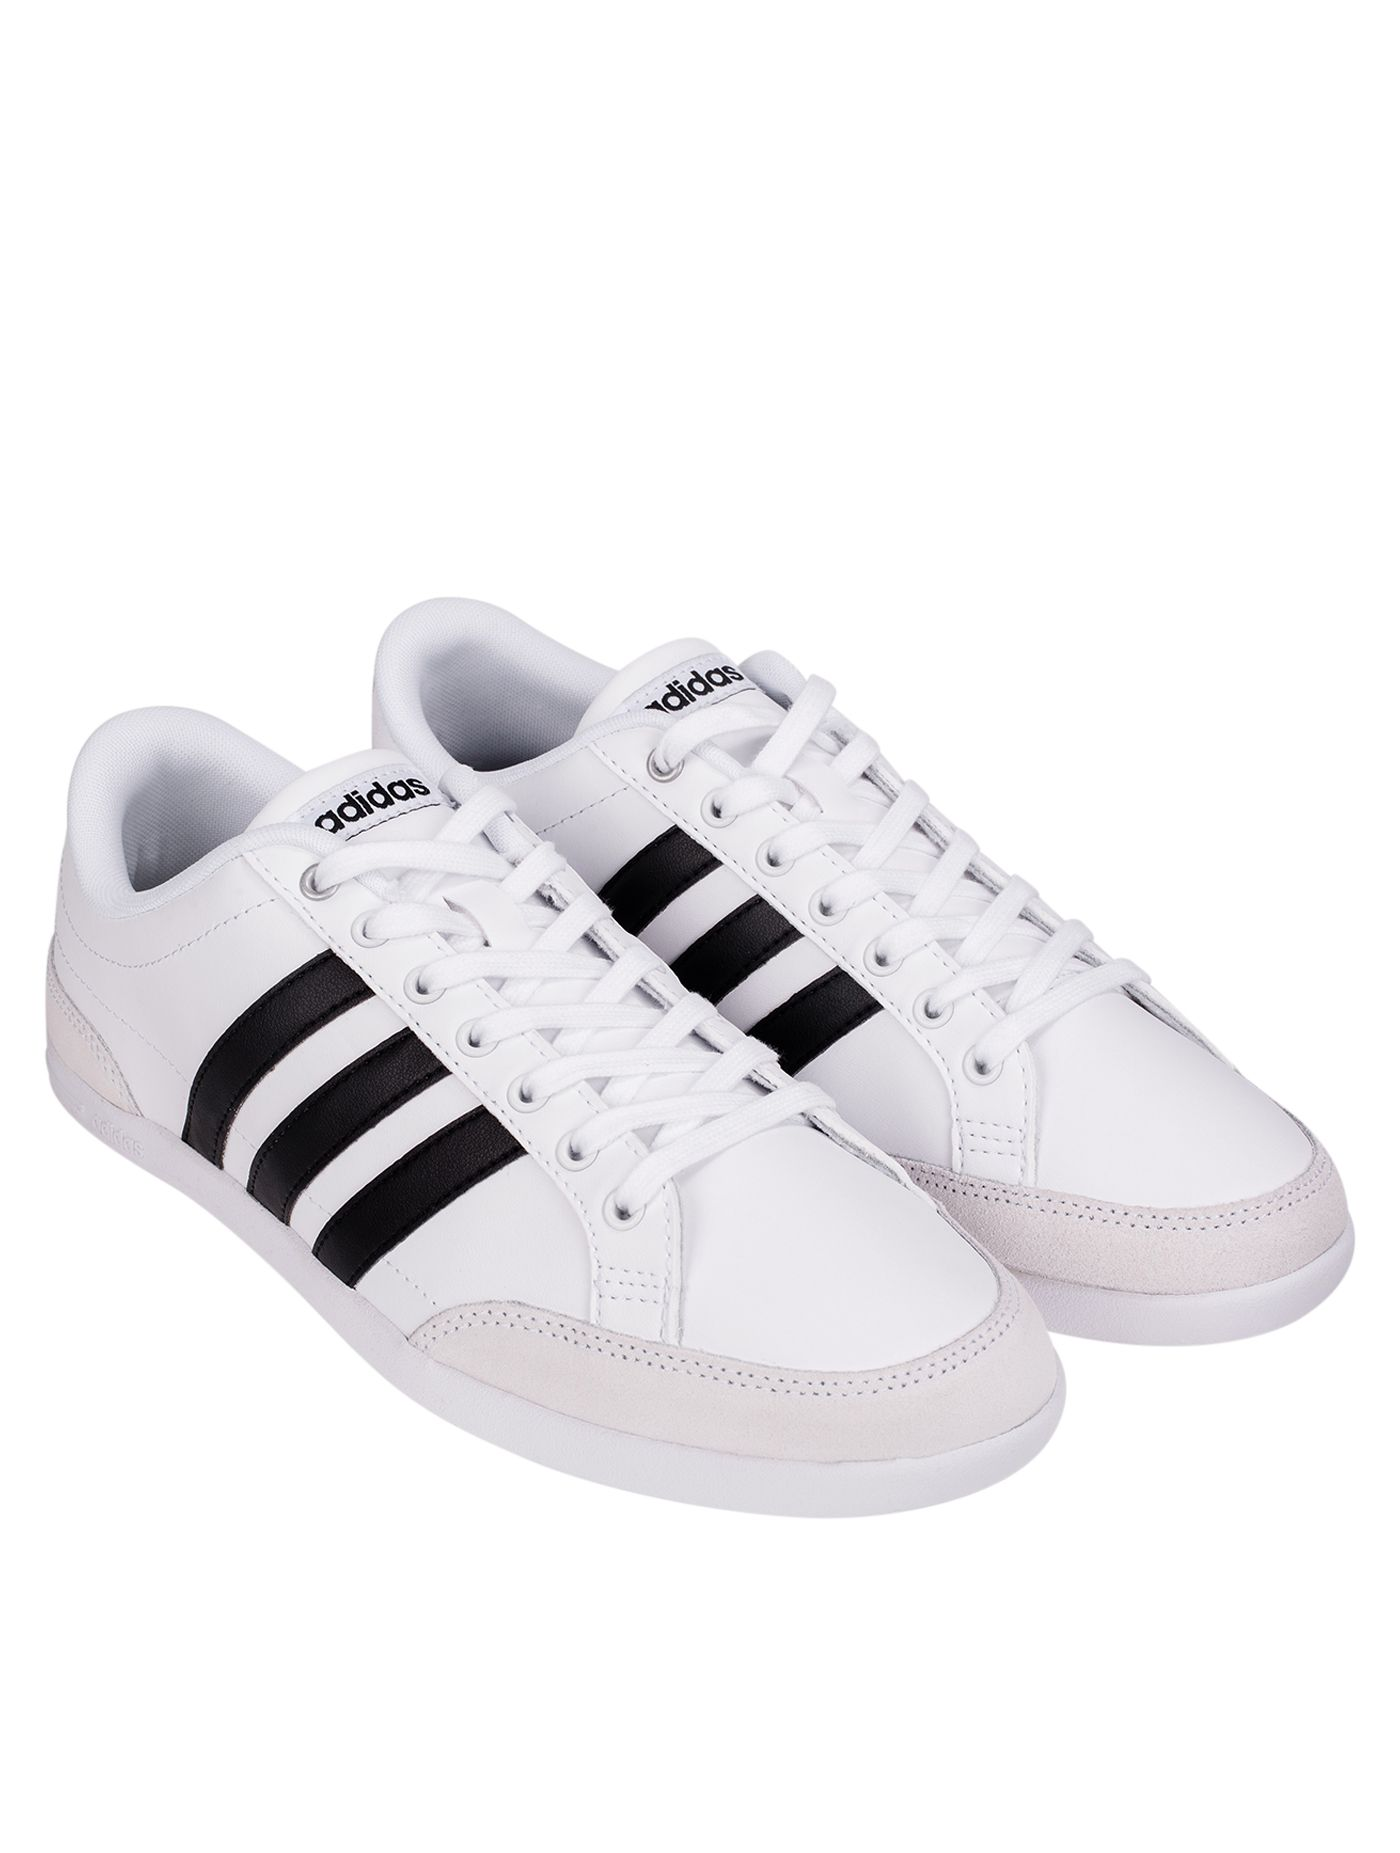 newest 4f7bd bbe28 ADIDAS NEO Mens Casual shoes CAFLAIRE B74614 Size UK7 White